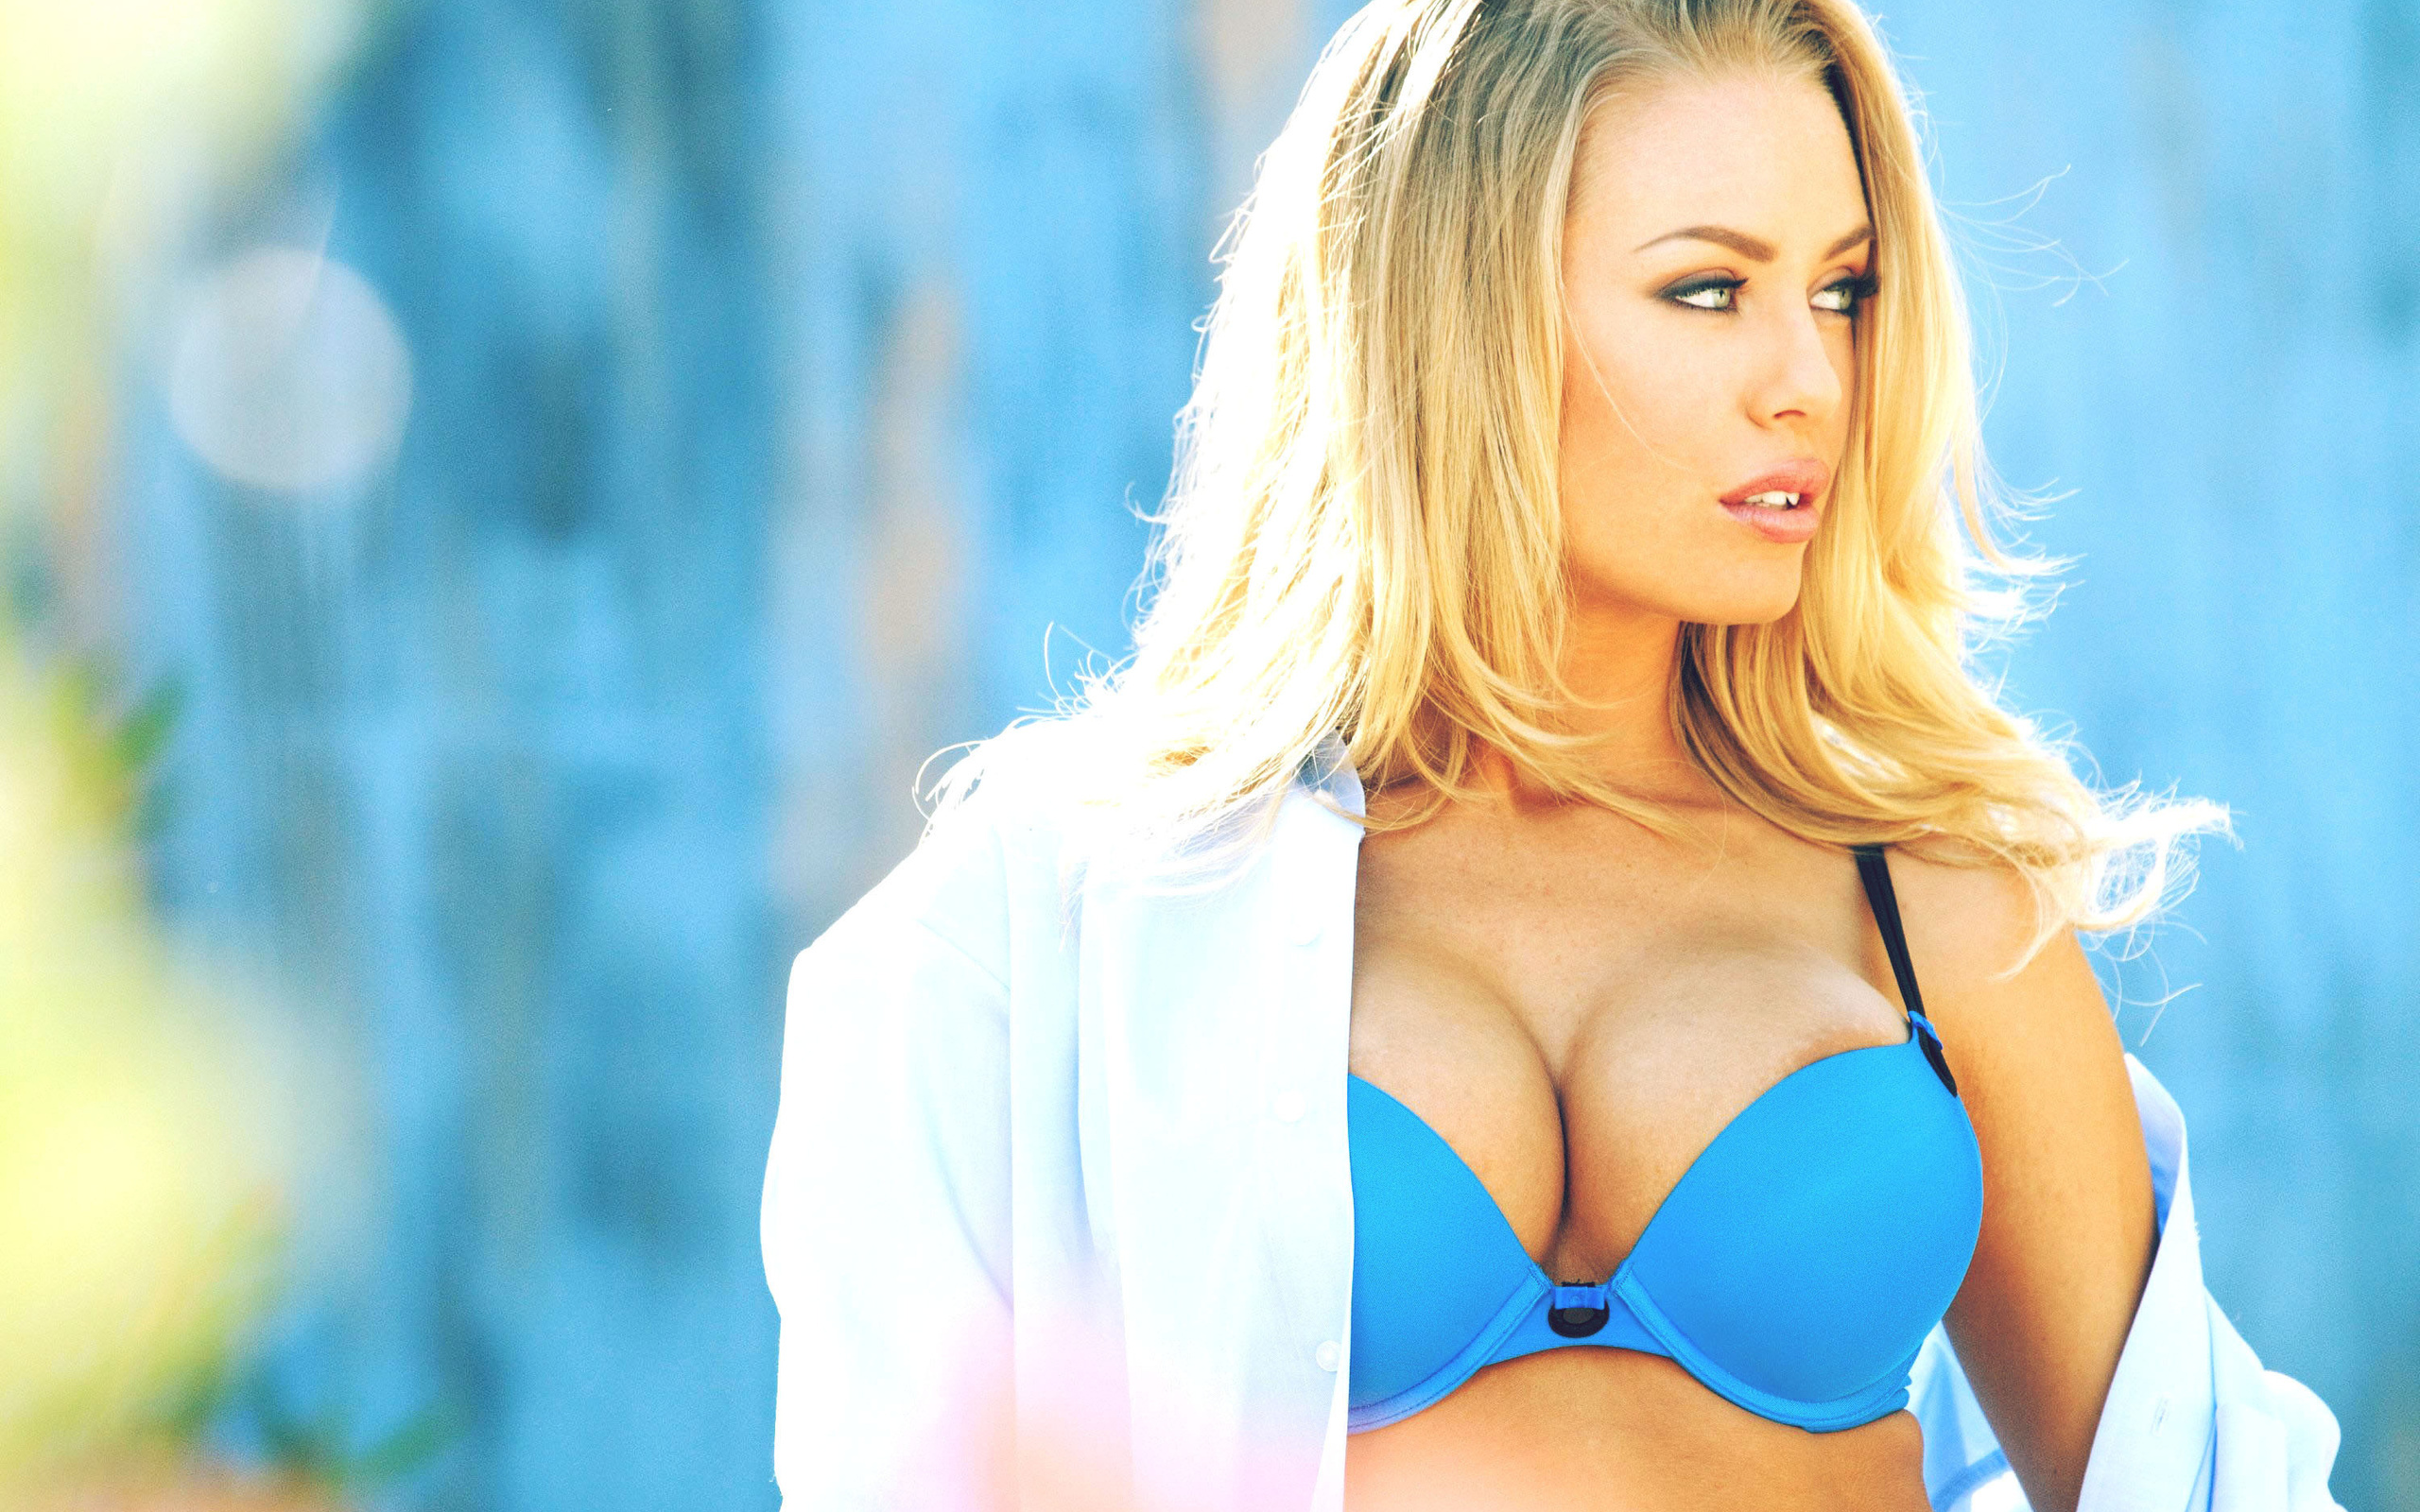 Nicole Aniston Wallpapers Hd